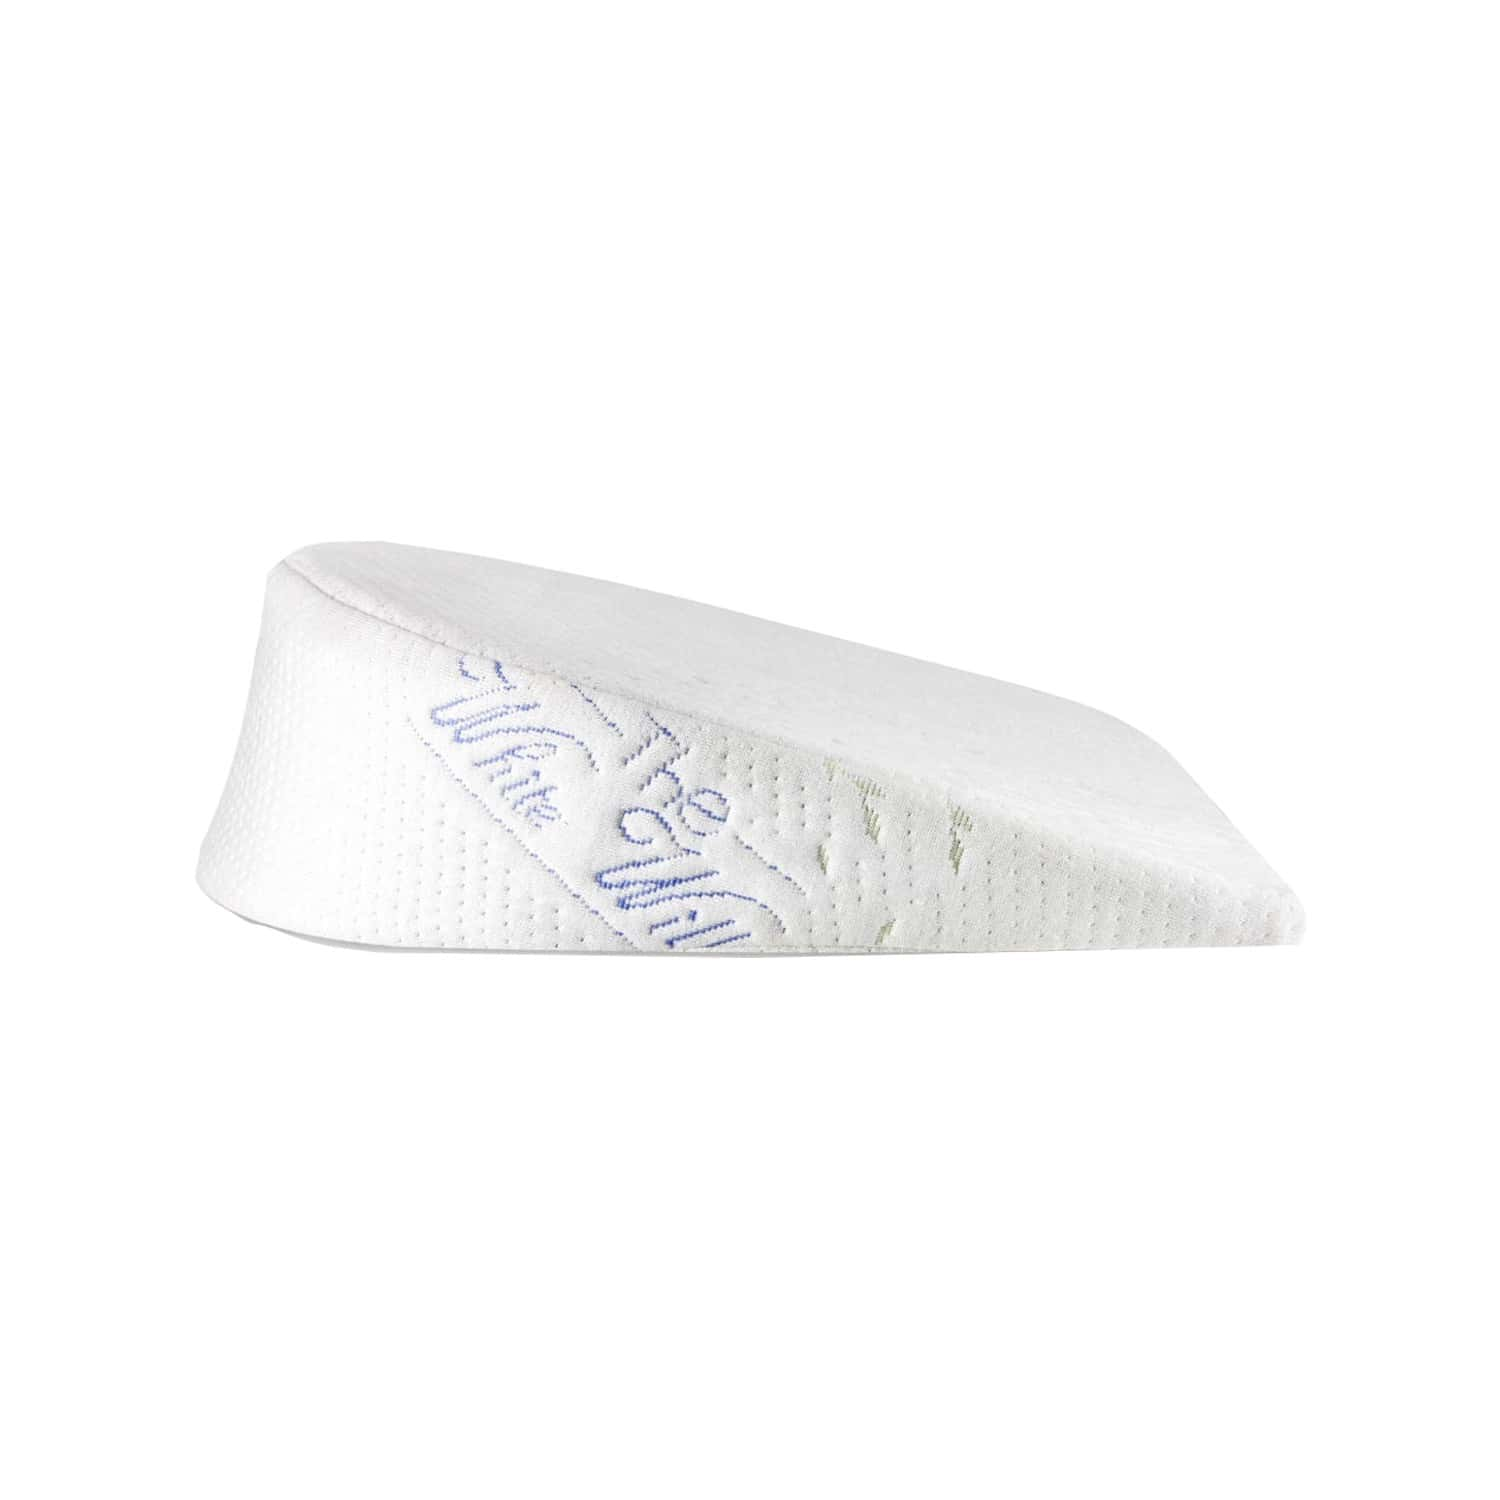 The White Willow Memory Foam Wedge Pregnancy Pillow For Maternity, Belly, Back, Knee, Between Legs Support- C Shaped -multi